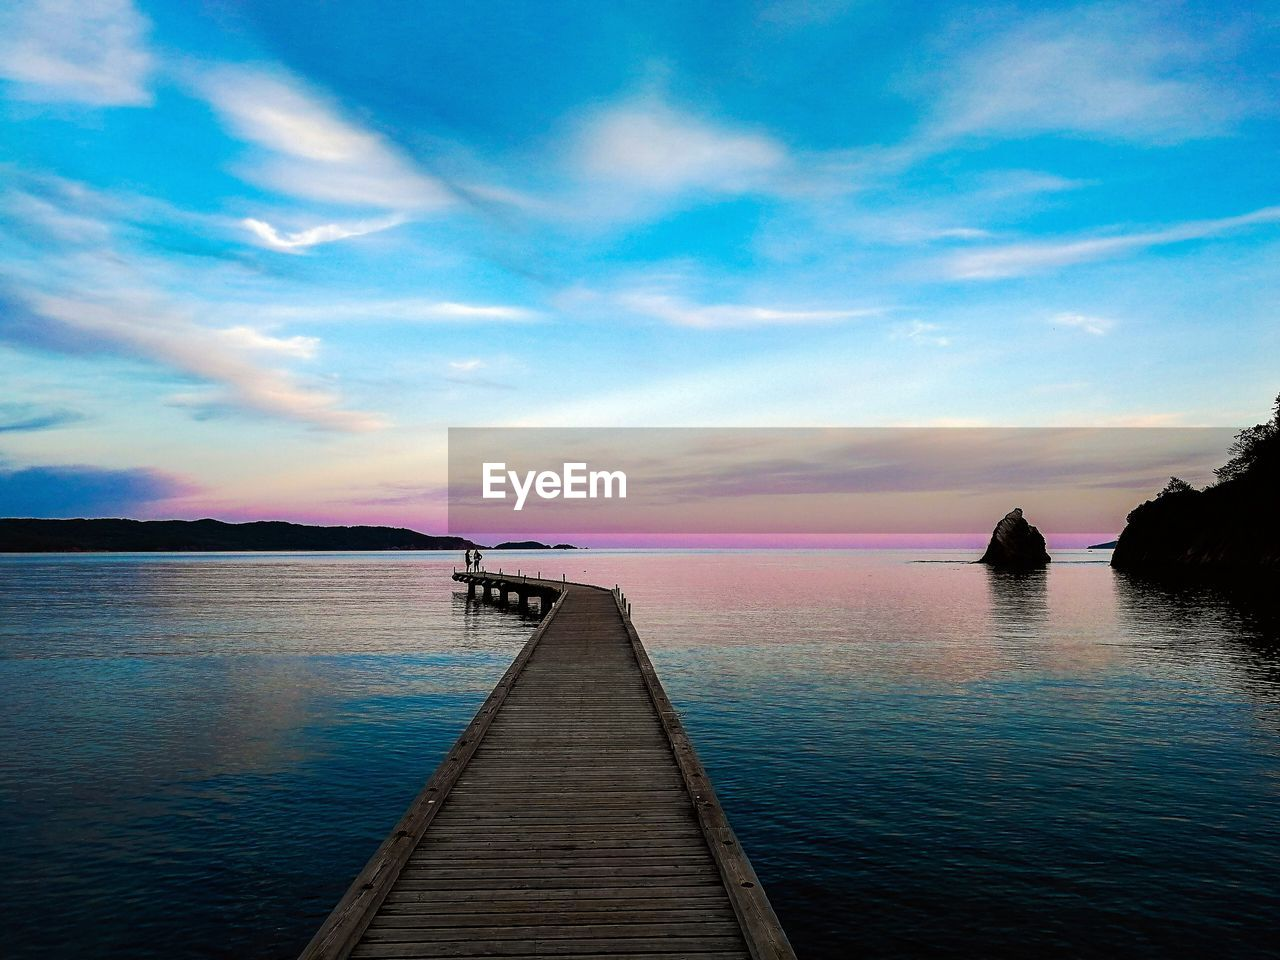 water, sky, sunset, beauty in nature, scenics - nature, pier, tranquility, tranquil scene, cloud - sky, wood - material, direction, the way forward, sea, jetty, nature, non-urban scene, idyllic, horizon, horizon over water, outdoors, diminishing perspective, no people, wood paneling, long